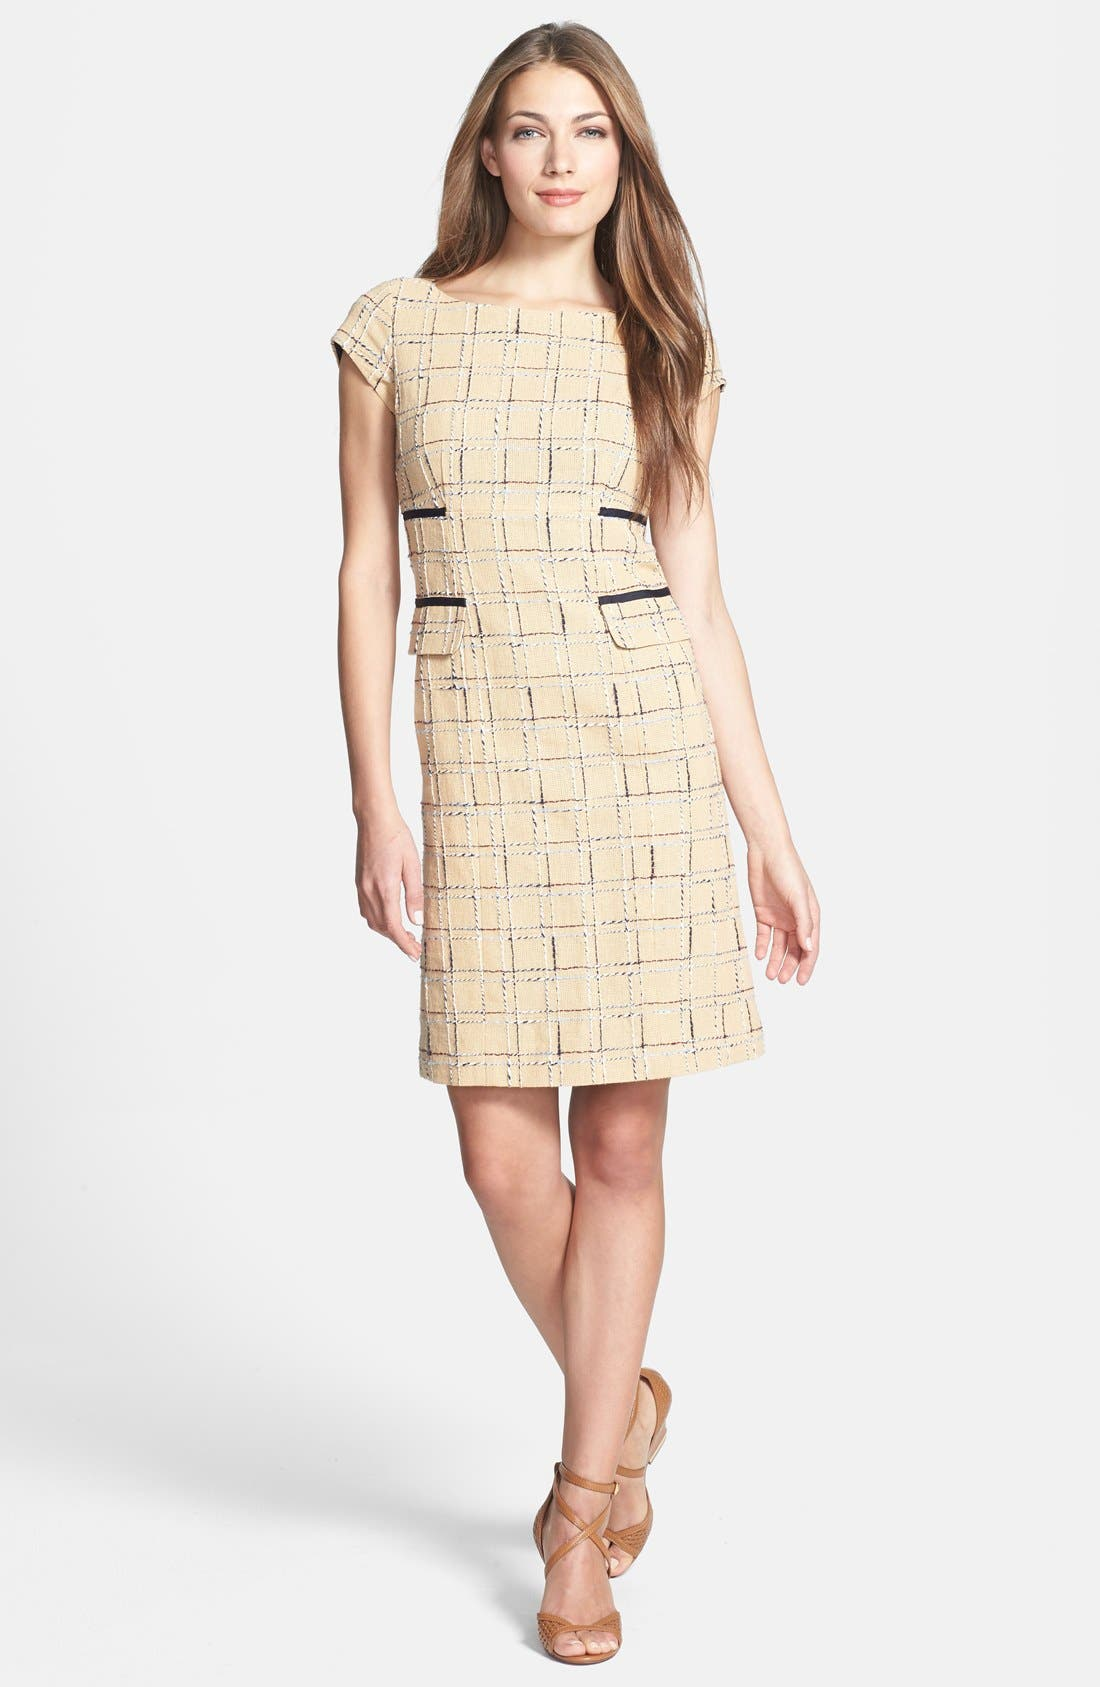 Alternate Image 1 Selected - Tory Burch 'Evie' Woven Cotton & Linen Sheath Dress